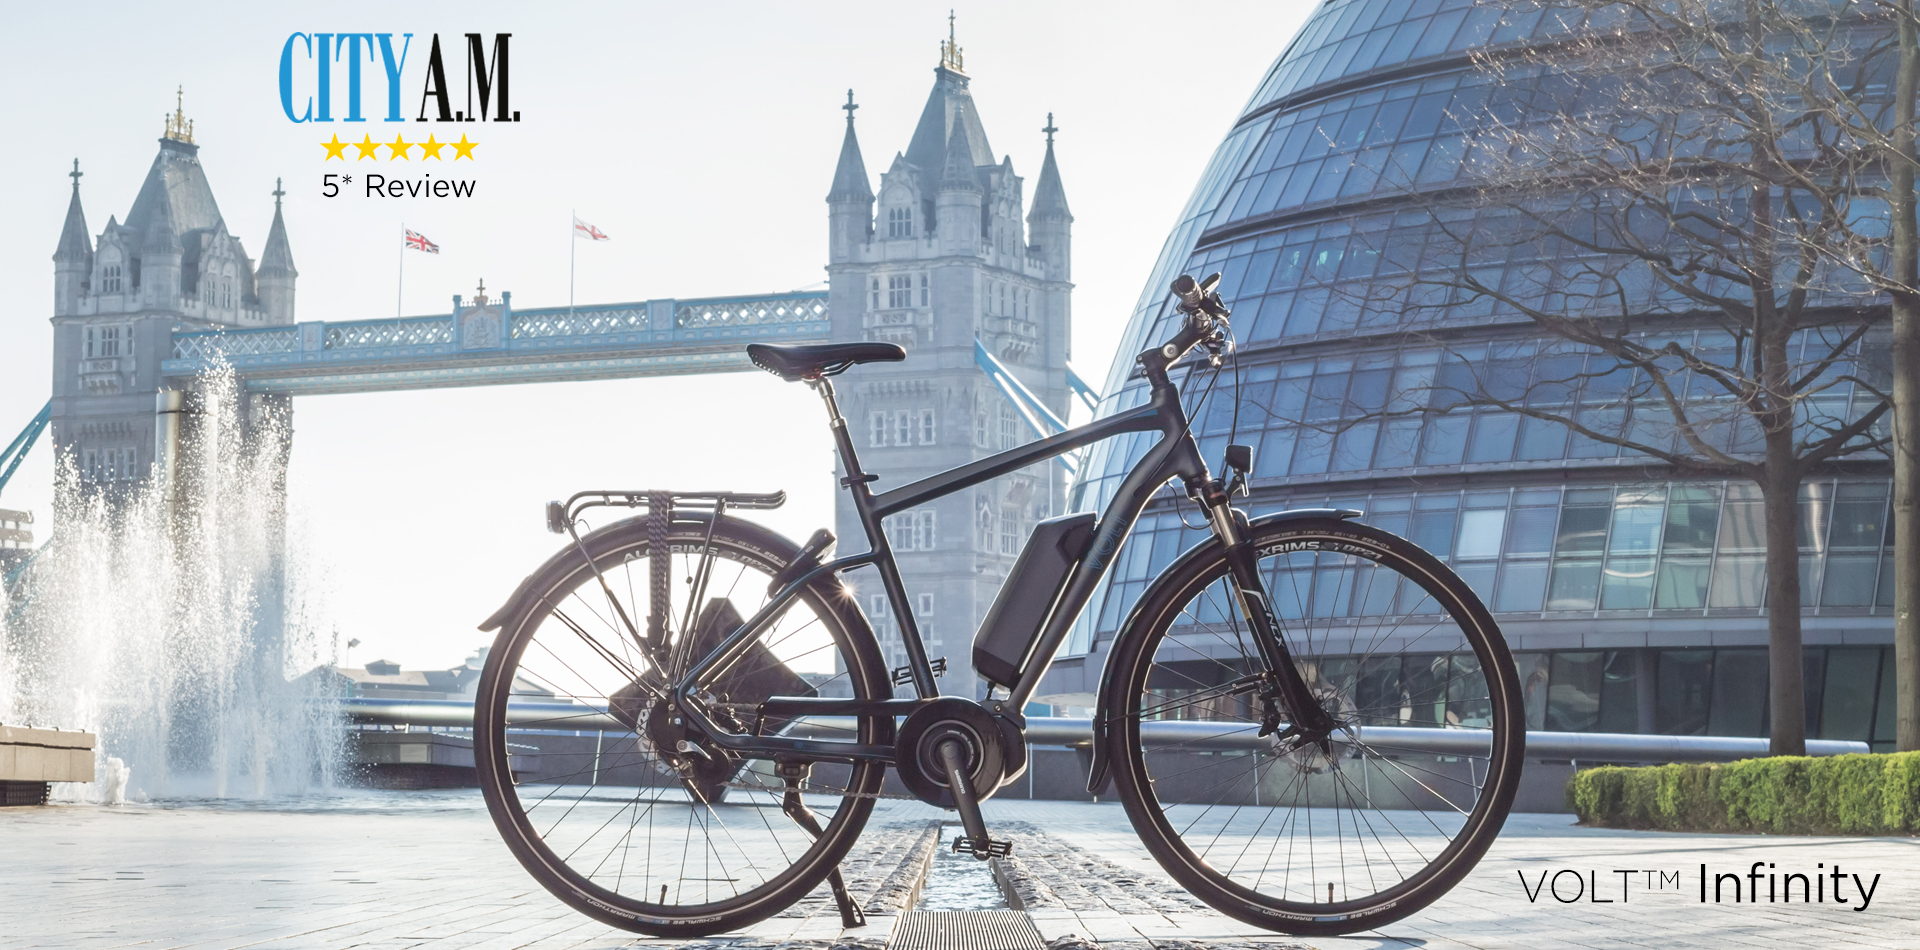 https://electric-bike-store.co.uk/wp-content/uploads/2017/06/VOLT-Infinity-Tower-Bridge.jpg